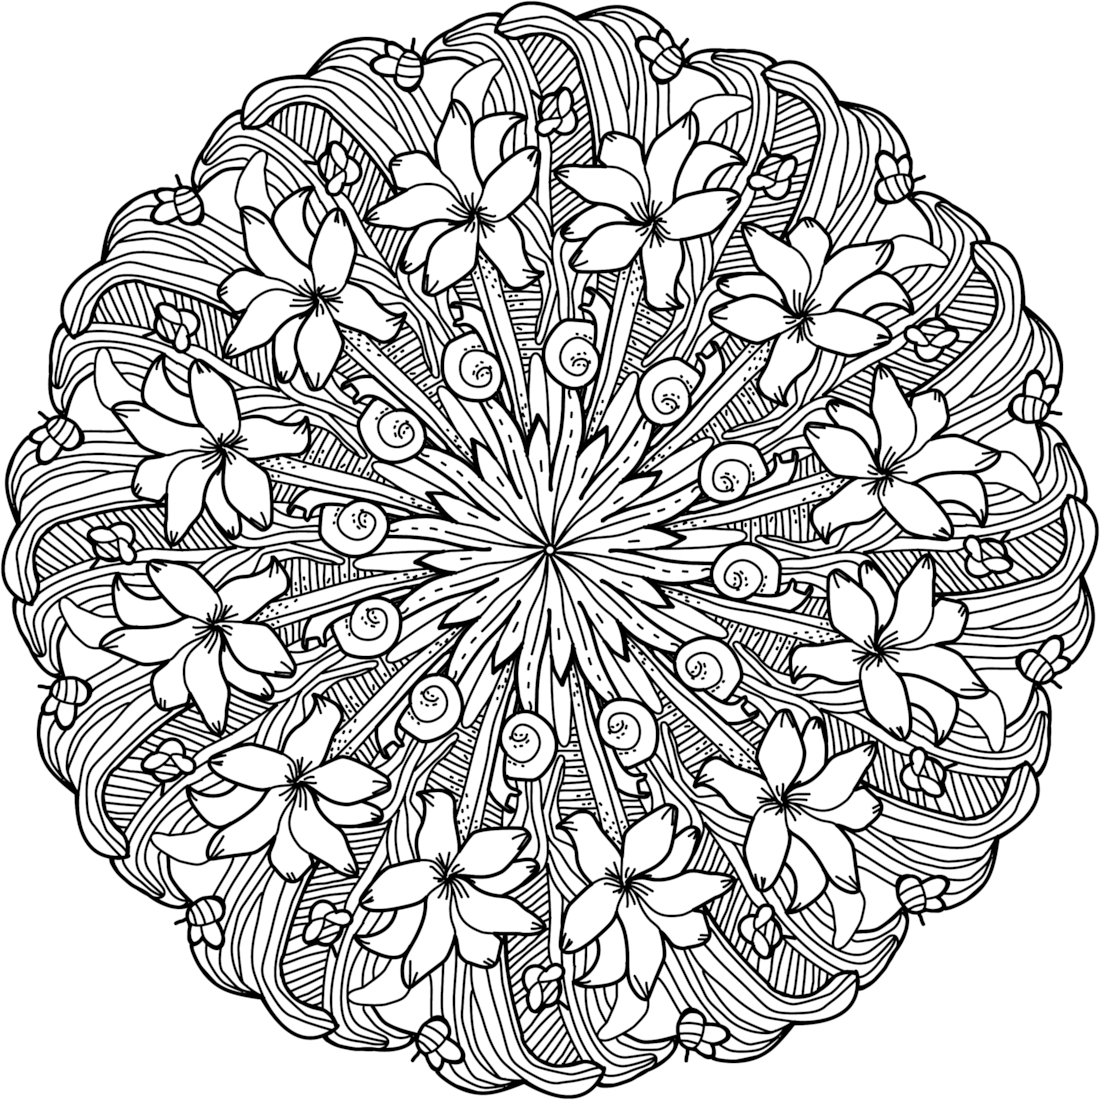 Free Printable Coloring Pages For Adults Advanced - Coloring Pages - Free Printable Coloring Pages For Adults Advanced